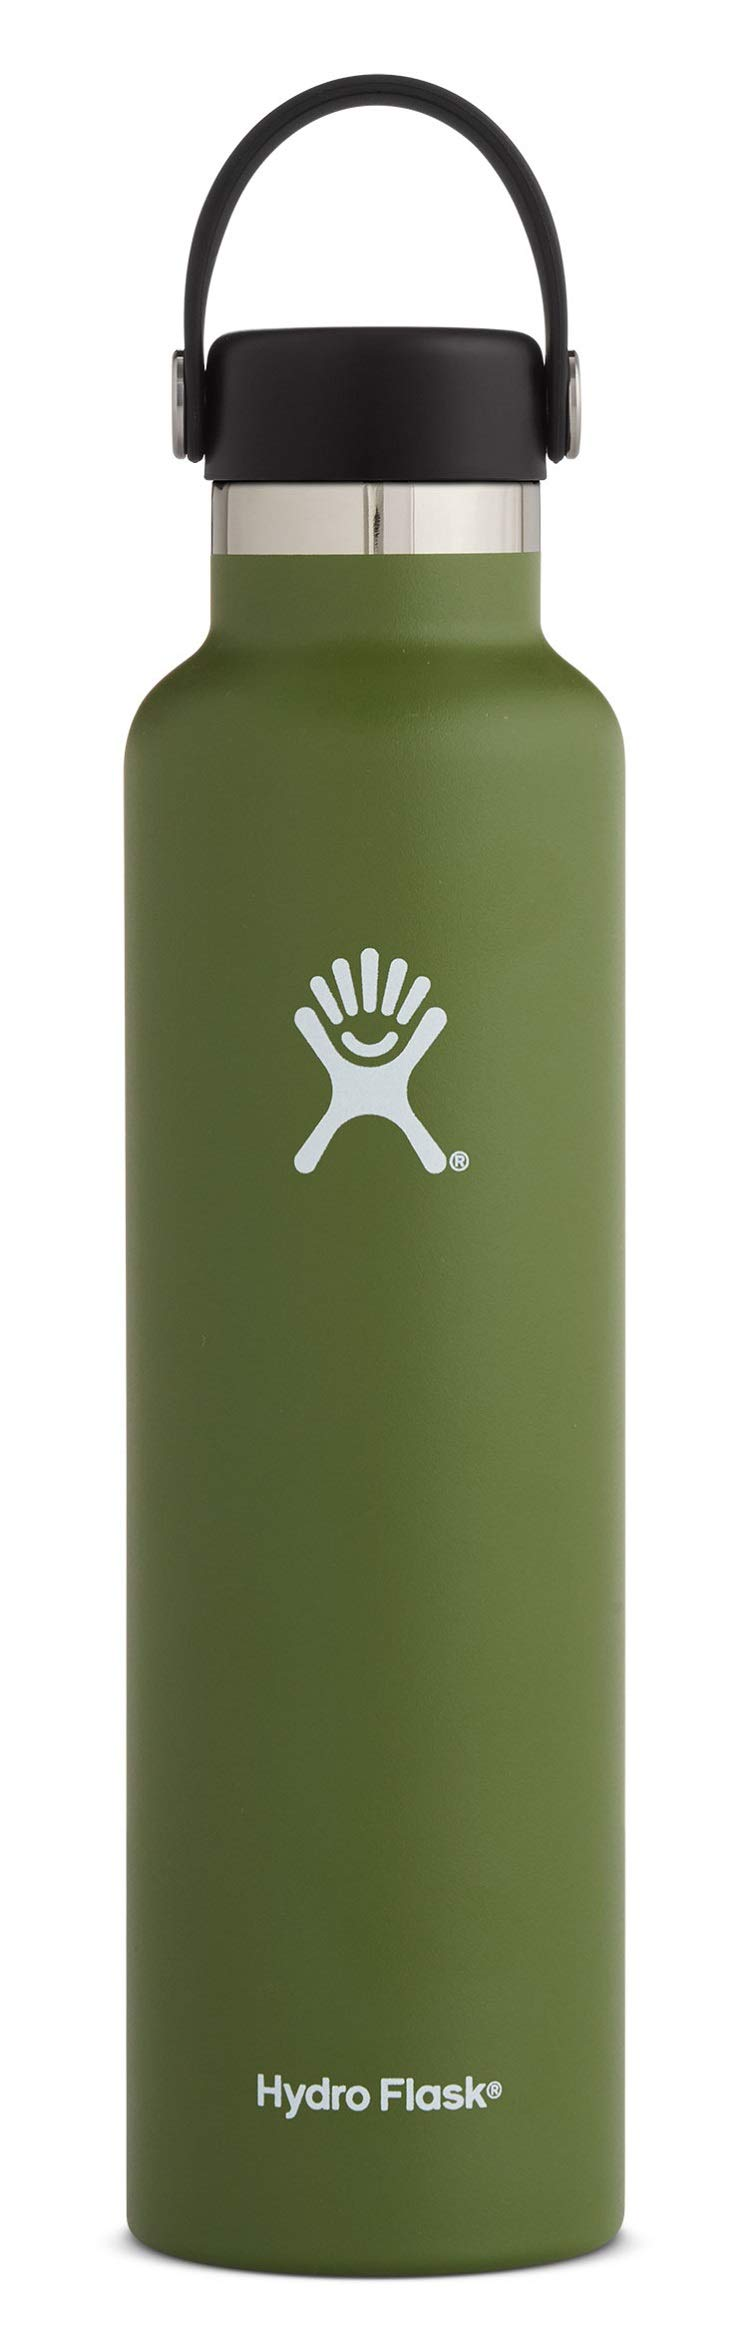 Hydro Flask Water Bottle - Stainless Steel & Vacuum Insulated - Standard Mouth with Leak Proof Flex Cap - 24 oz, Olive by Hydro Flask